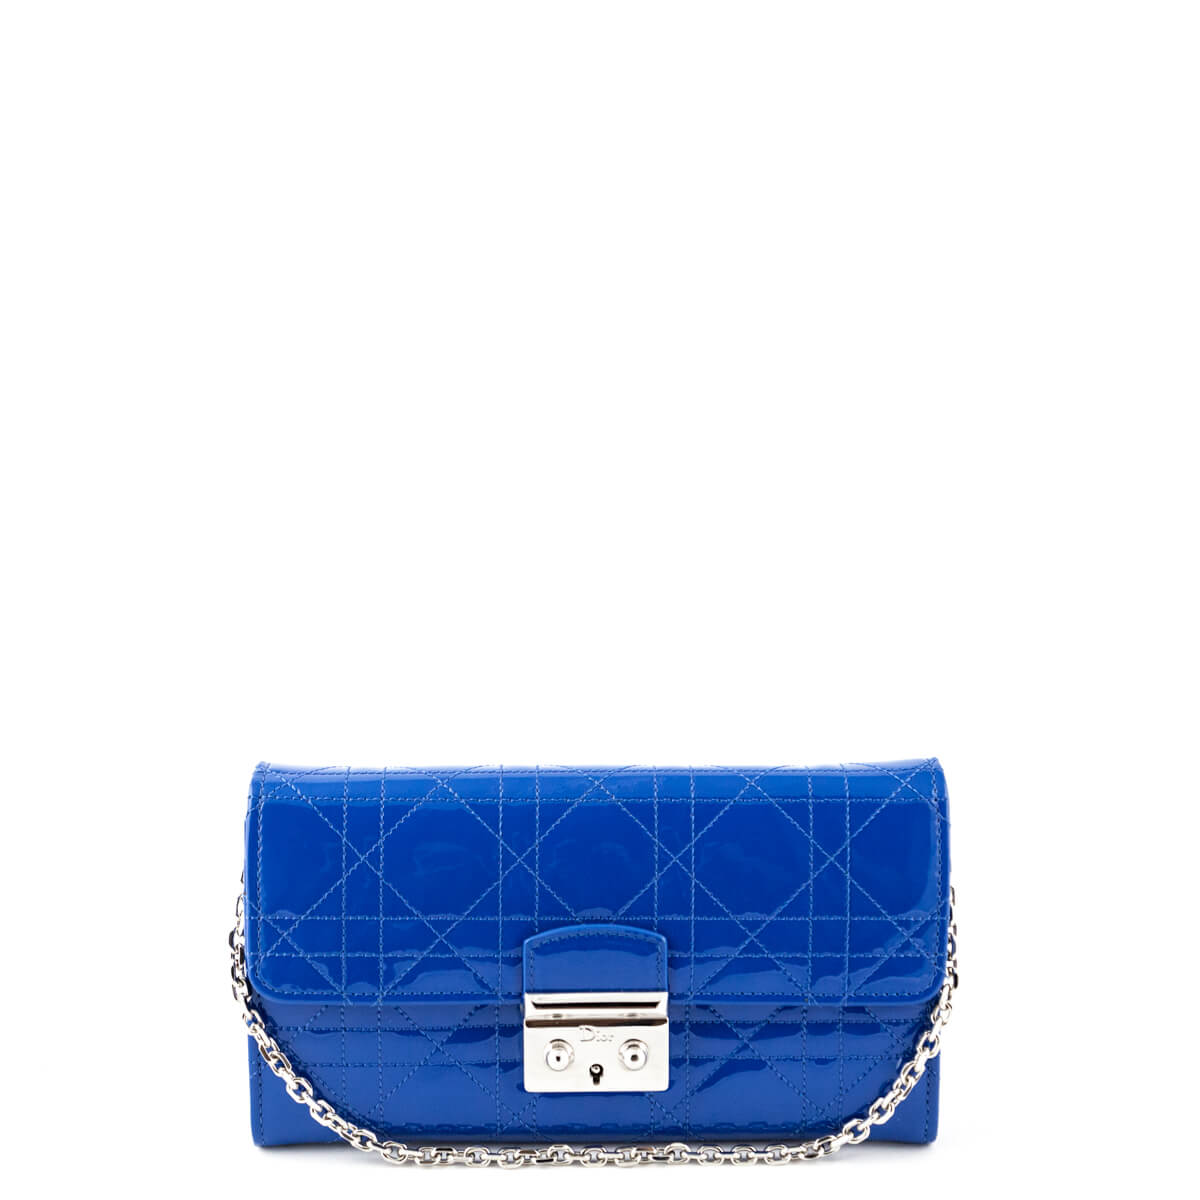 Dior Blue Cannage Patent Miss Dior Wallet on Chain - LOVE that BAG -  Preowned Authentic ... 3b921645d0638